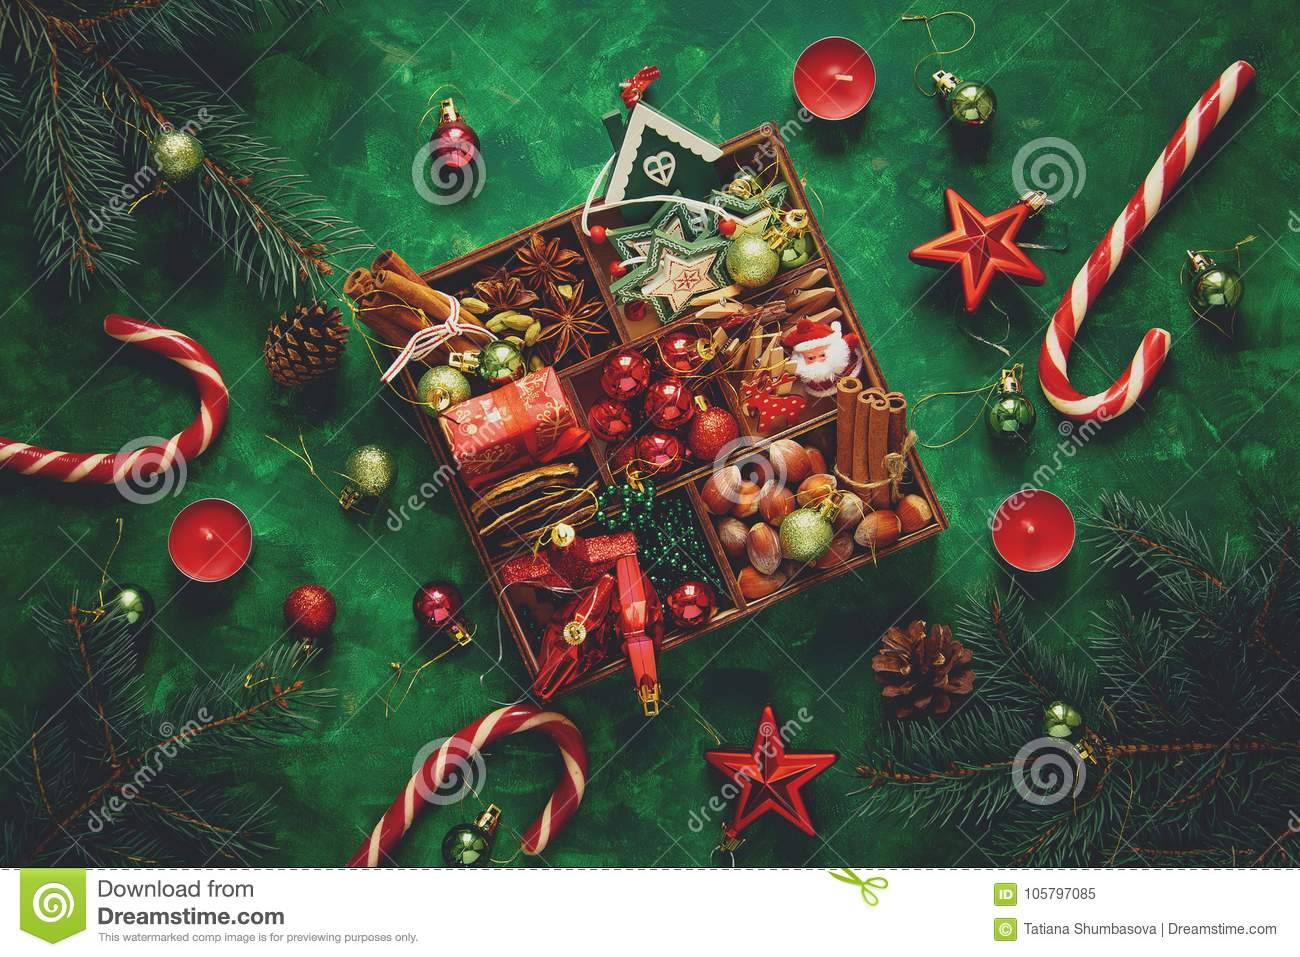 Christmas composition. Christmas tree and box with spices and toys on green wooden background